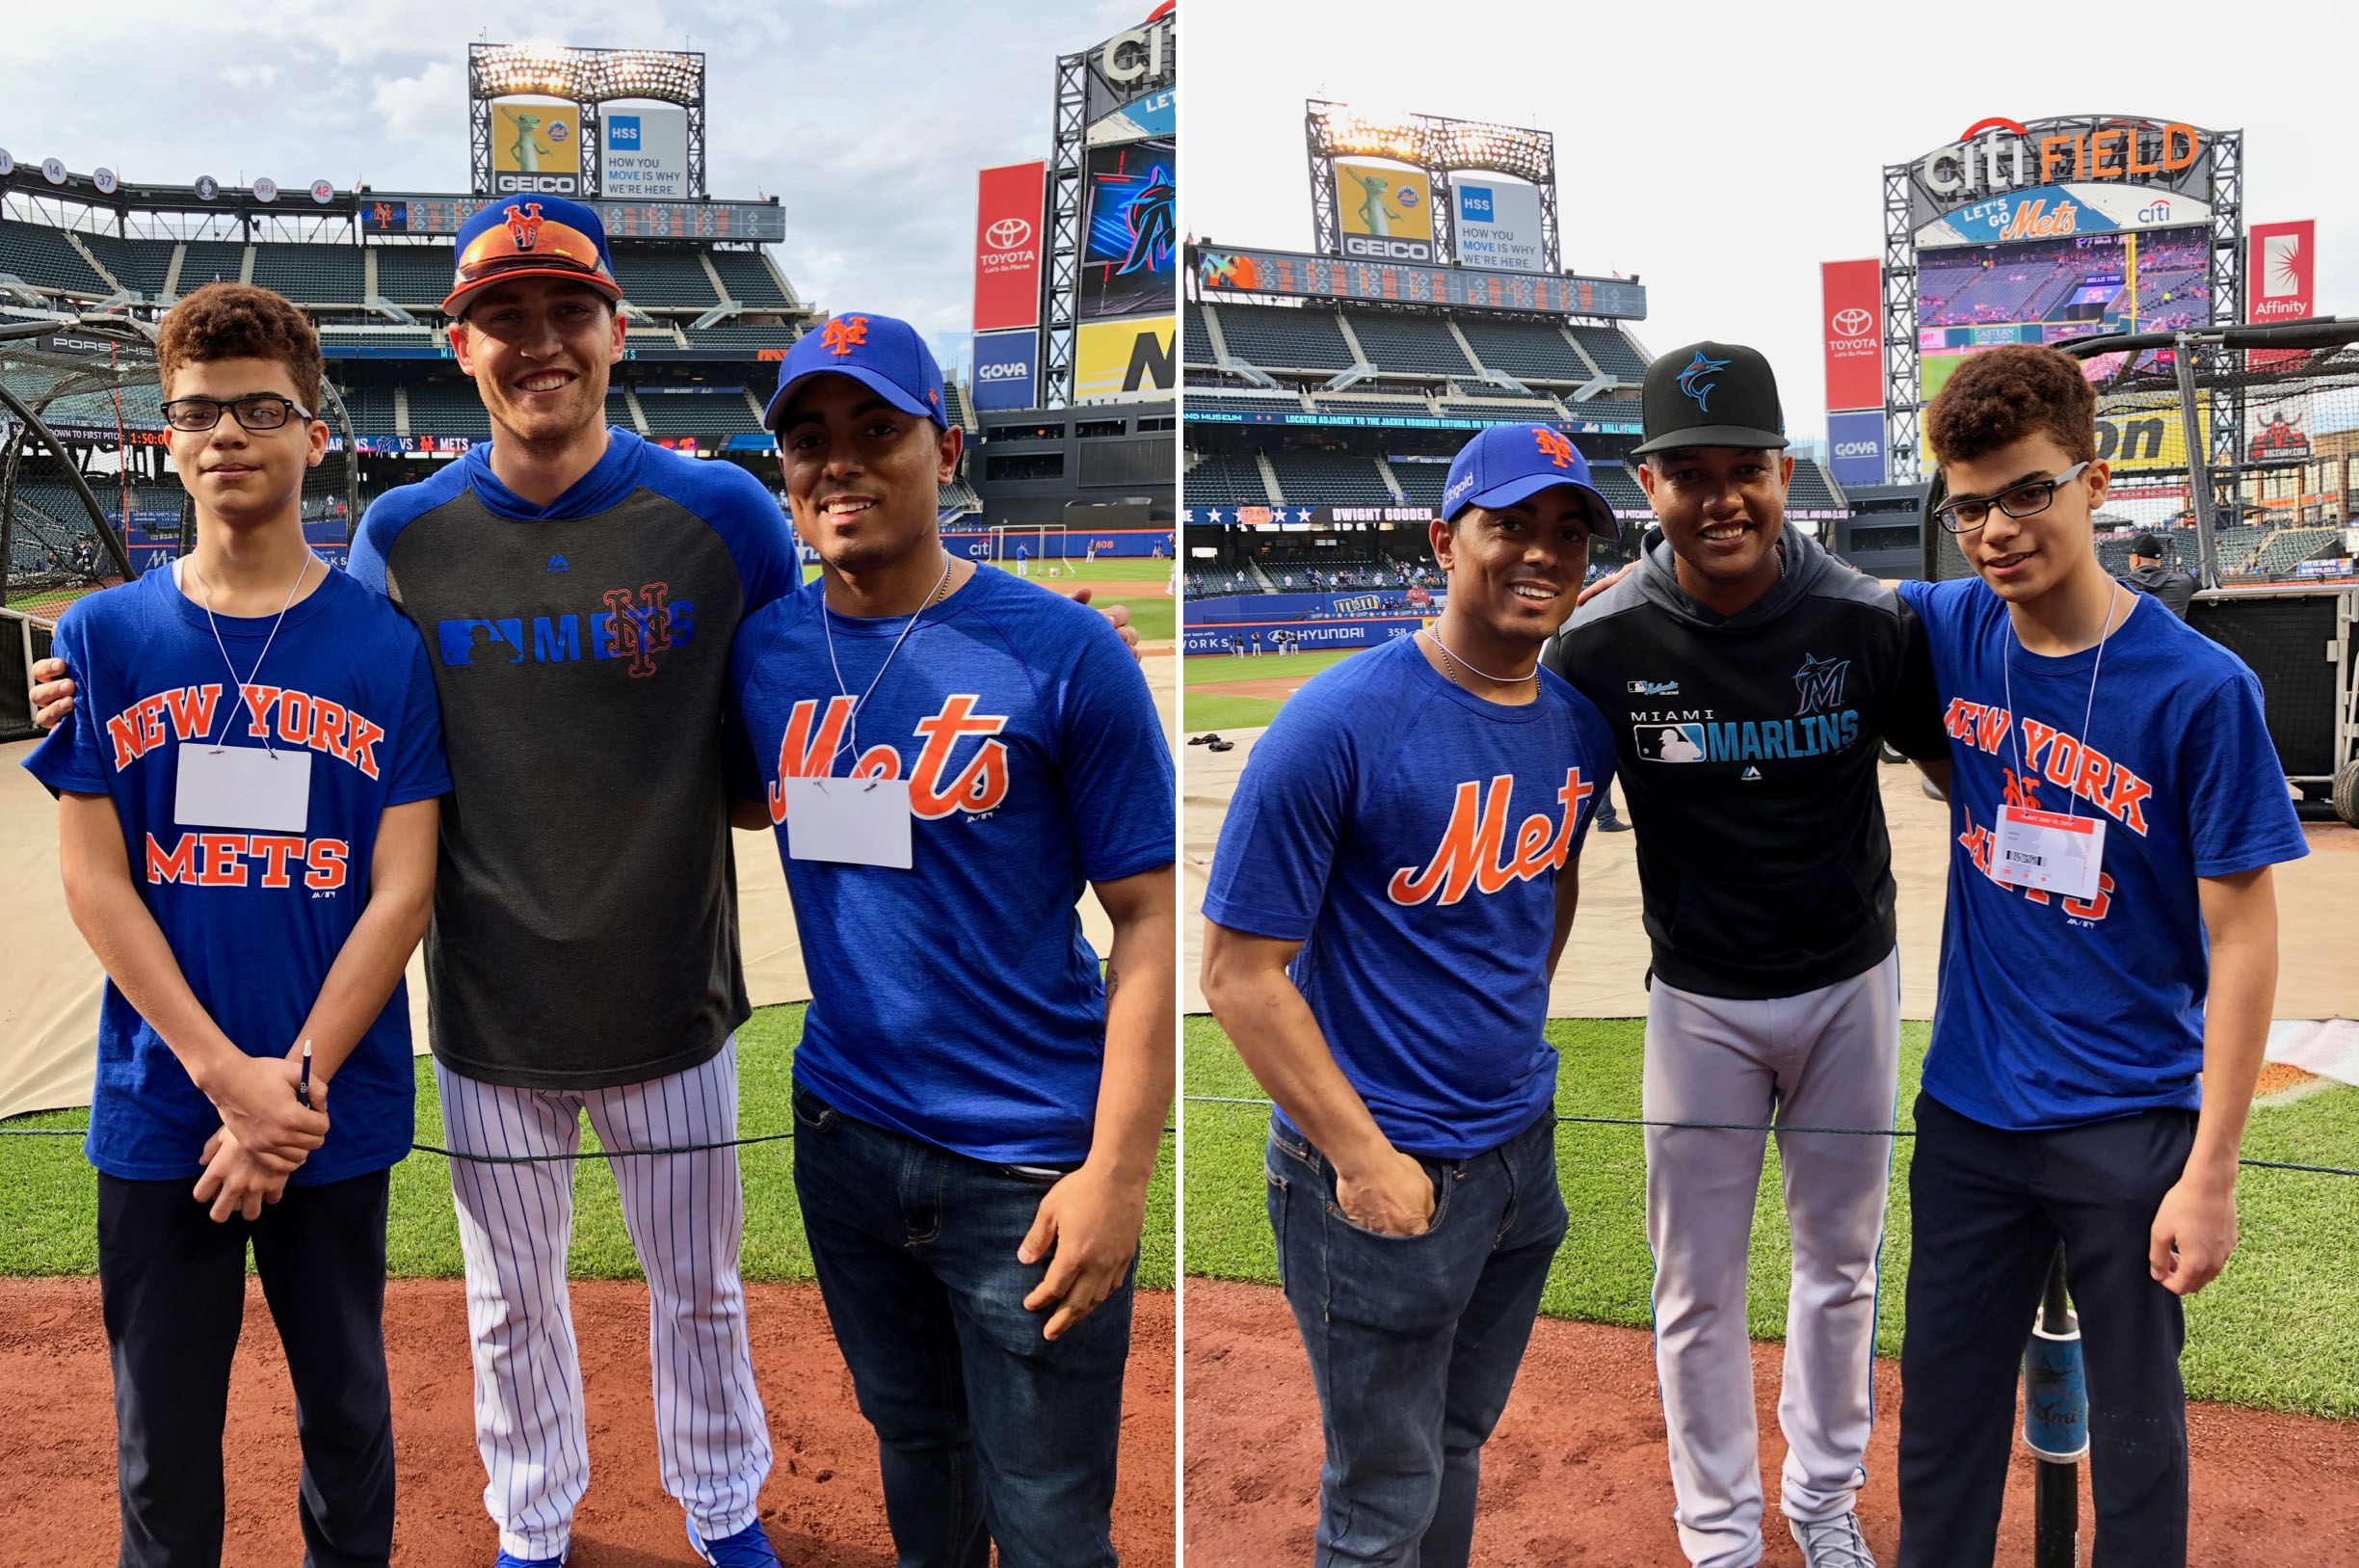 Mentor Raul and mentee Daniel with Brandon Nimmo of the New York Mets and Starlin Castro of the Miami Marlins